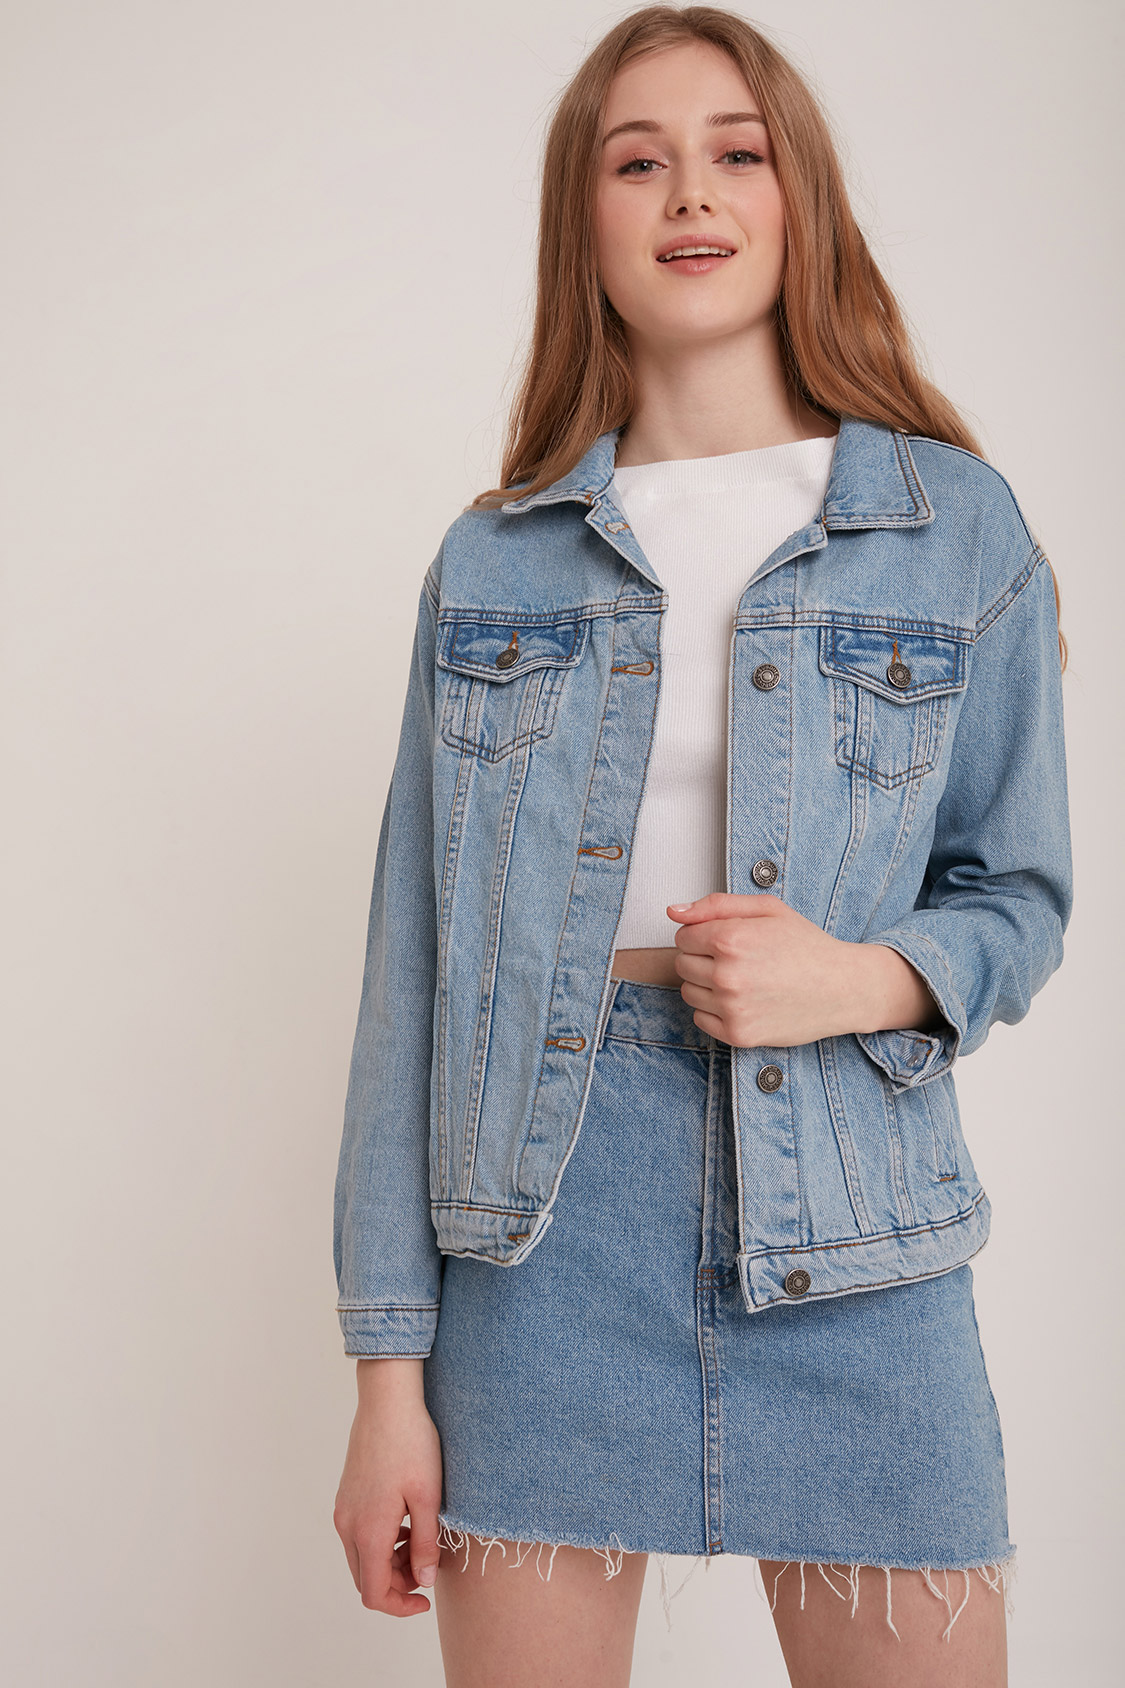 e4e4afd5e5b0 Oversized denim jacket. Skip to the beginning of the images gallery